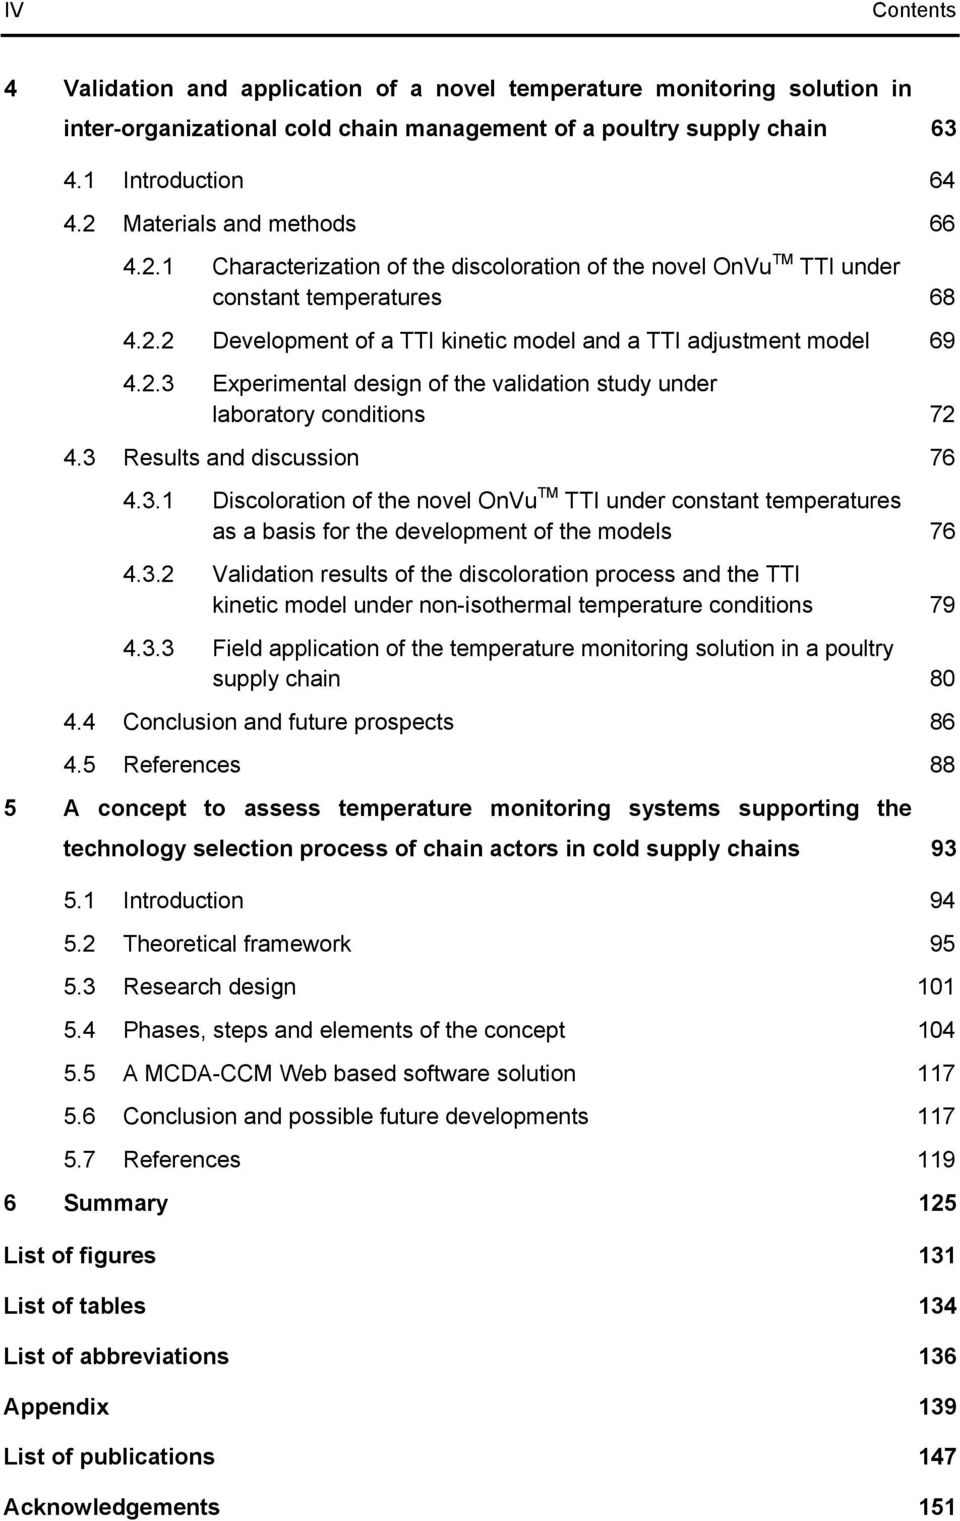 2.3 Experimental design of the validation study under laboratory conditions 72 4.3 Results and discussion 76 4.3.1 Discoloration of the novel OnVu TM TTI under constant temperatures as a basis for the development of the models 76 4.